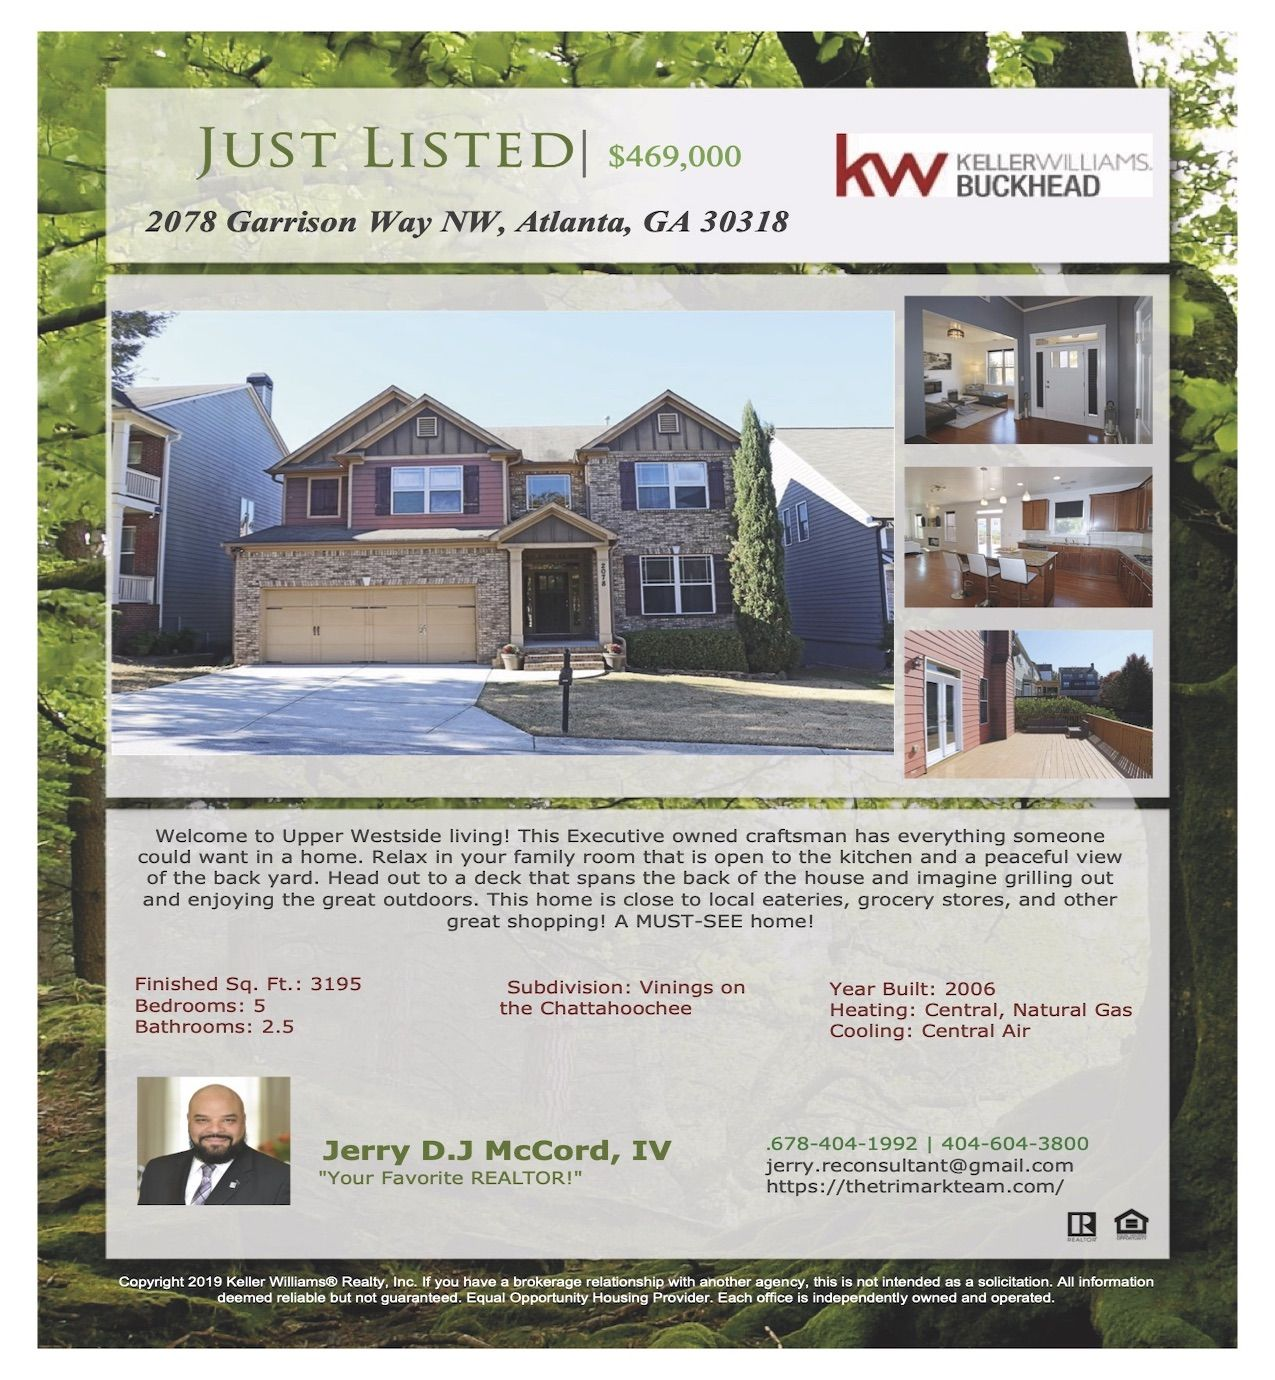 New Listing Alert Don T Miss This Lovely Home Call Me Today At 678 404 1992 For More Information Justlisted Atlanta Real Estate Family Room Buckhead